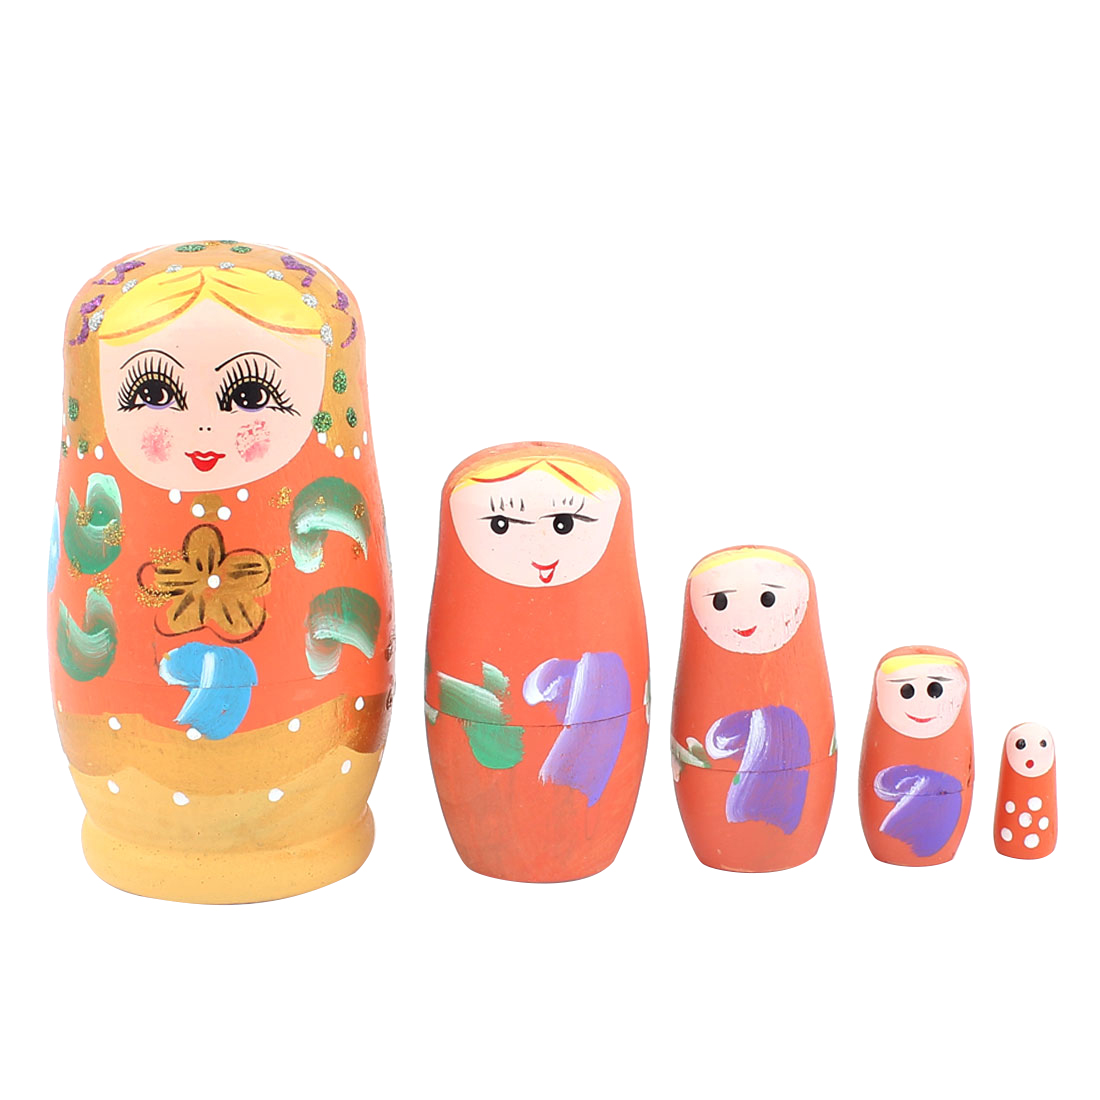 Russian Babushka Flowers Painted Nesting Matryoshka Doll Orange 5 in 1